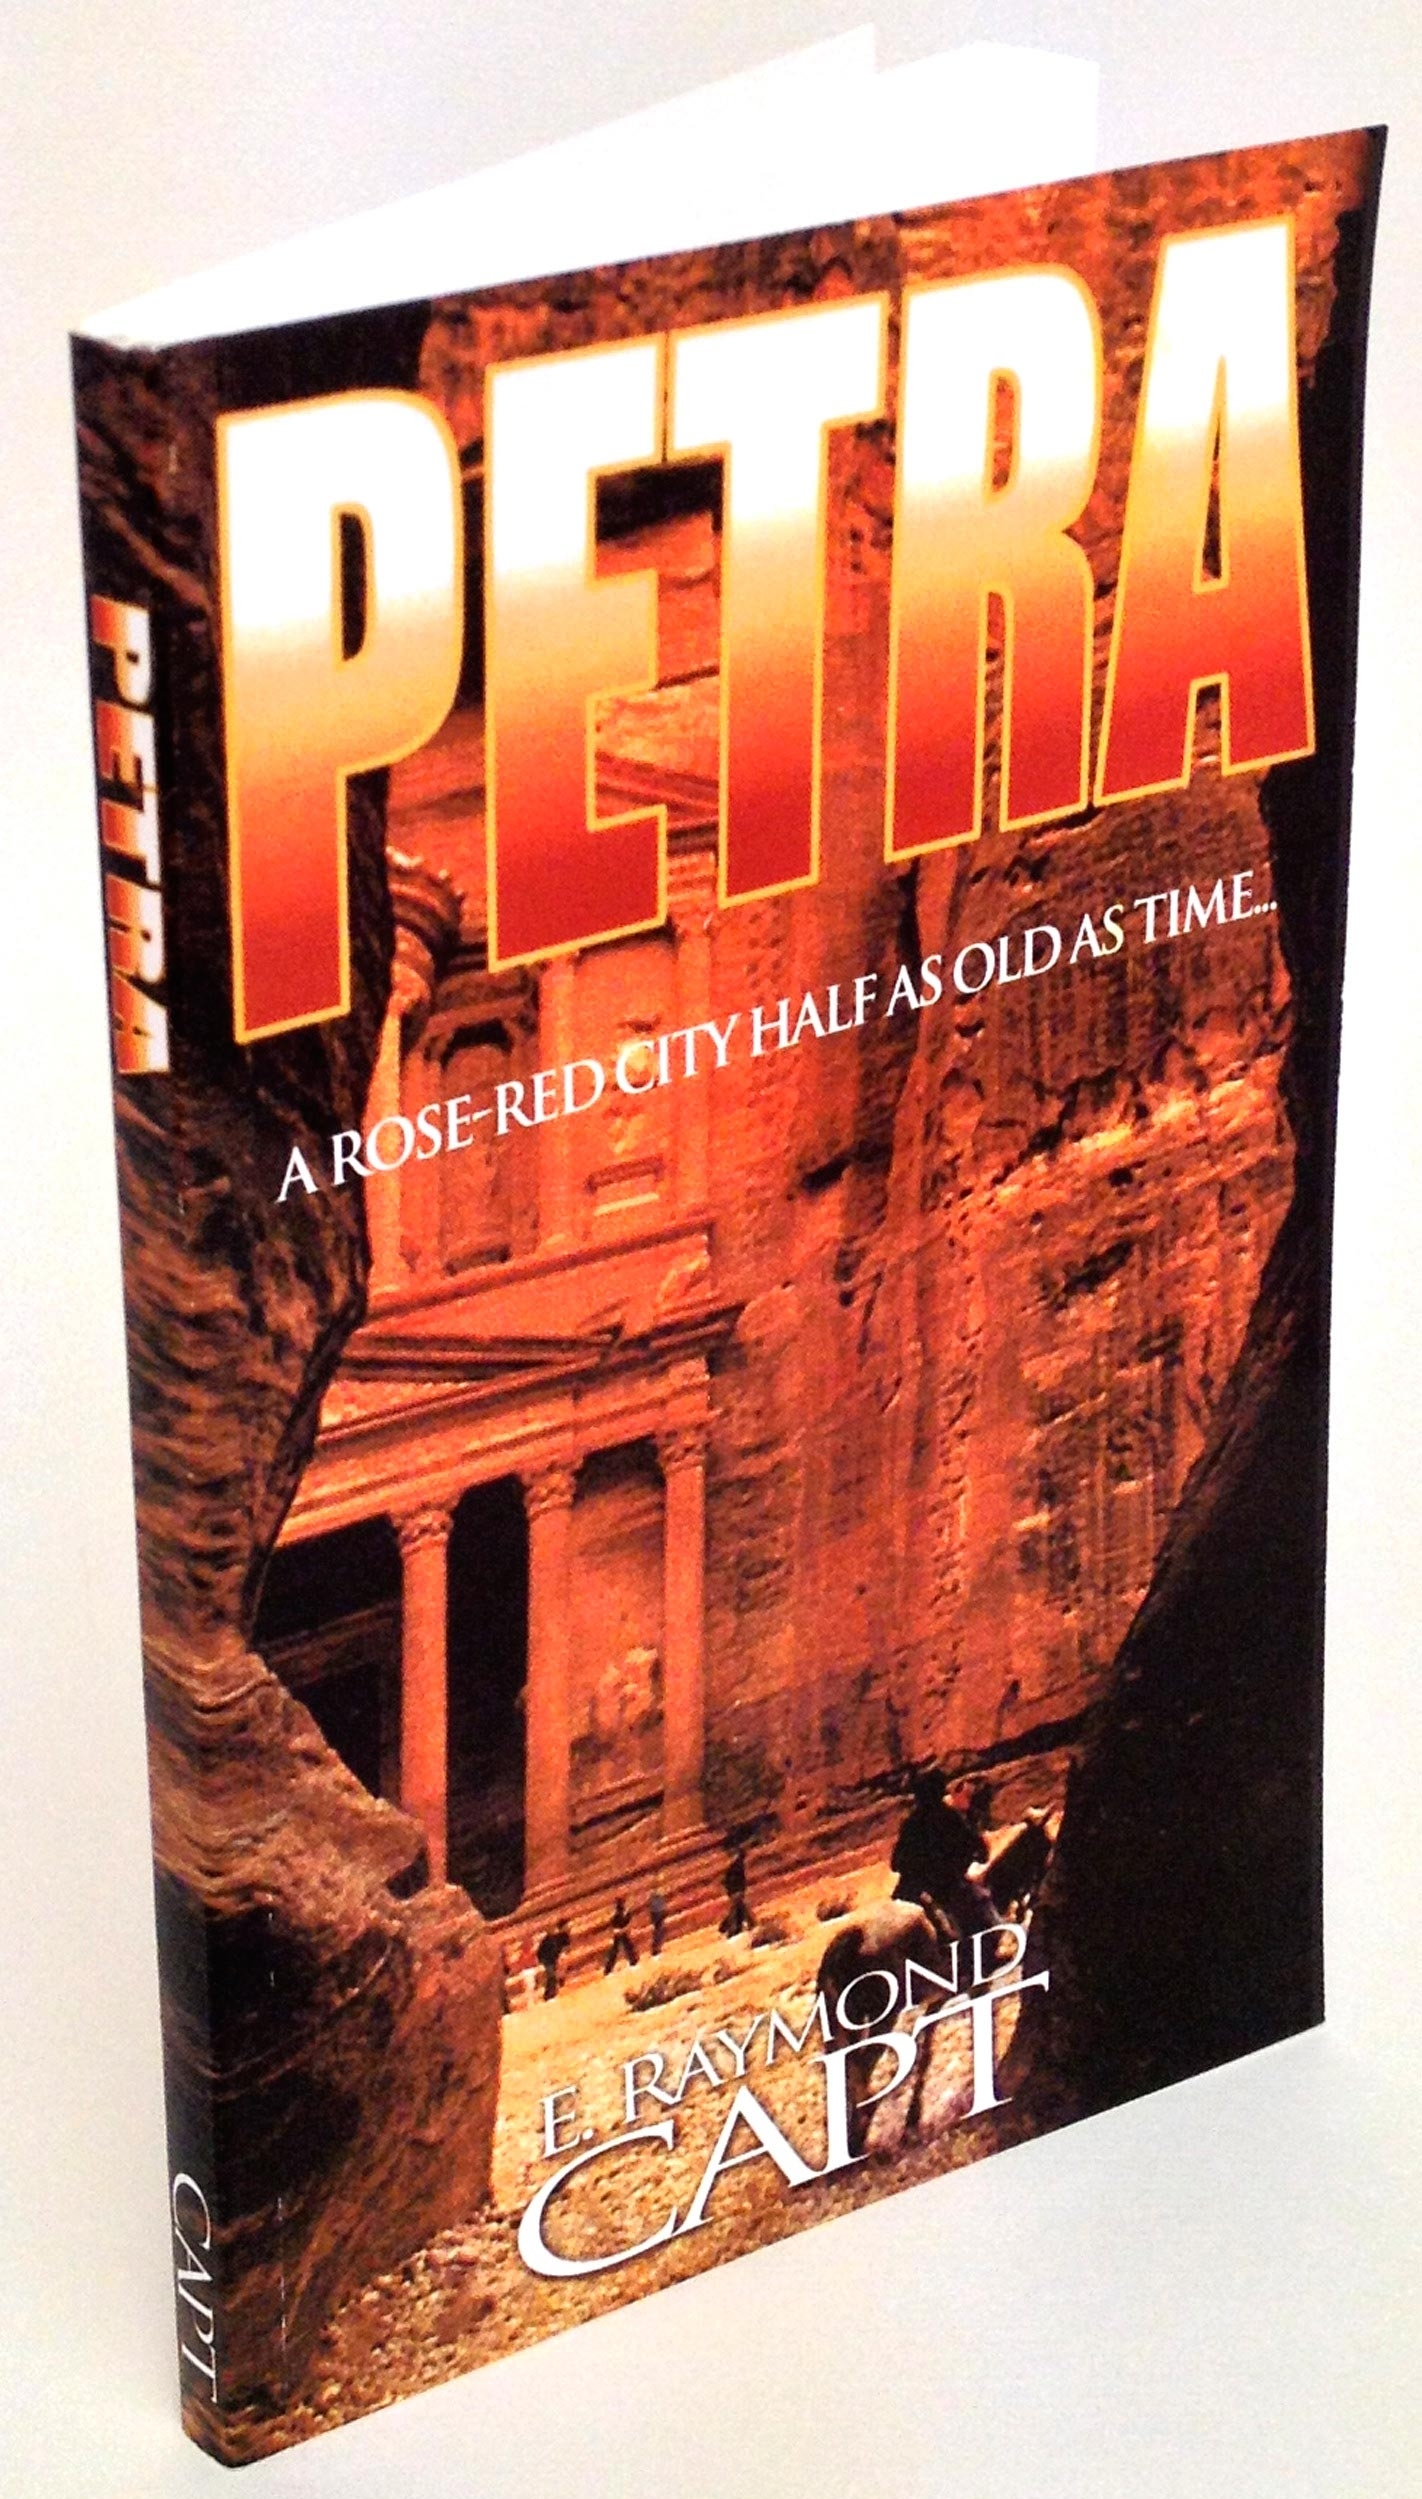 "PETRA... ""A rose-red city half as old as time"" - E. Raymond Capt [Kindle Available]"